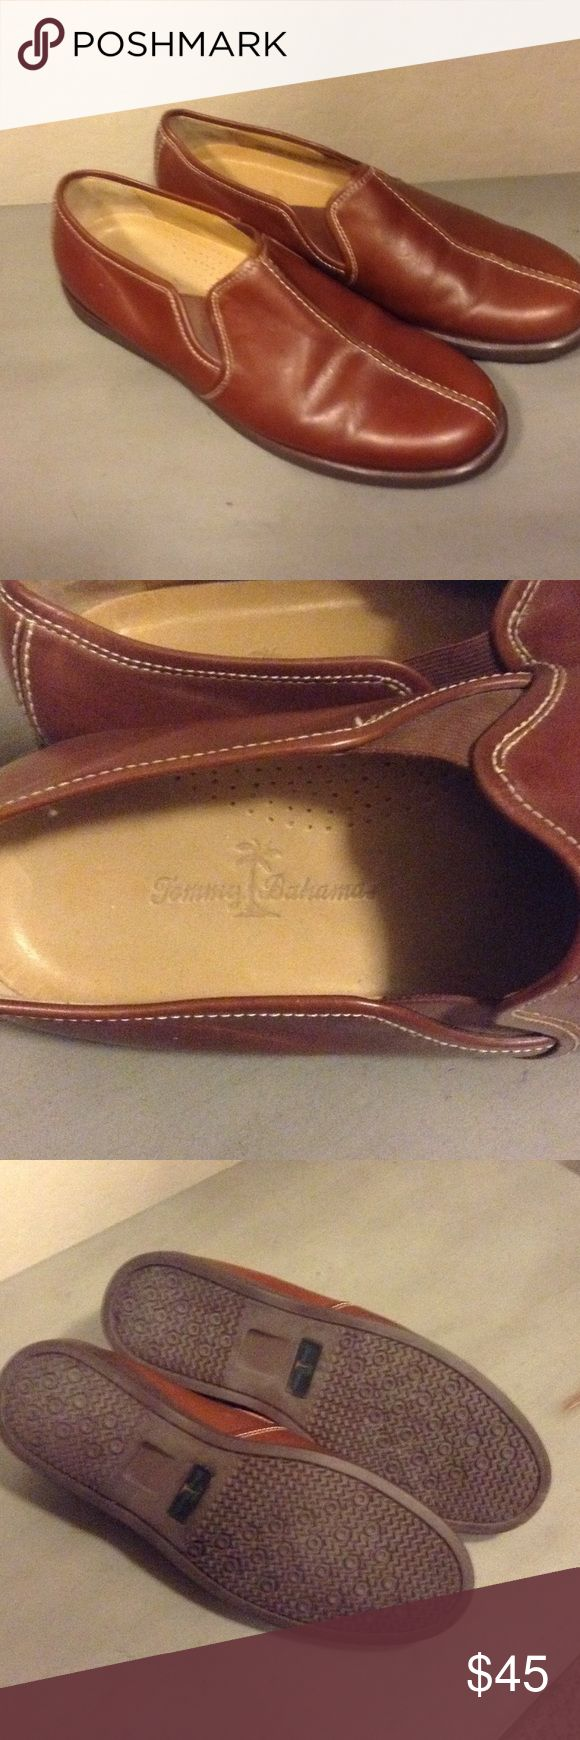 Russet Brown Tommy Bahama Slip-Ons Tommy Bahama Leather Slip-Ons. New, never worn, no box. Tommy Bahama Shoes Loafers & Slip-Ons